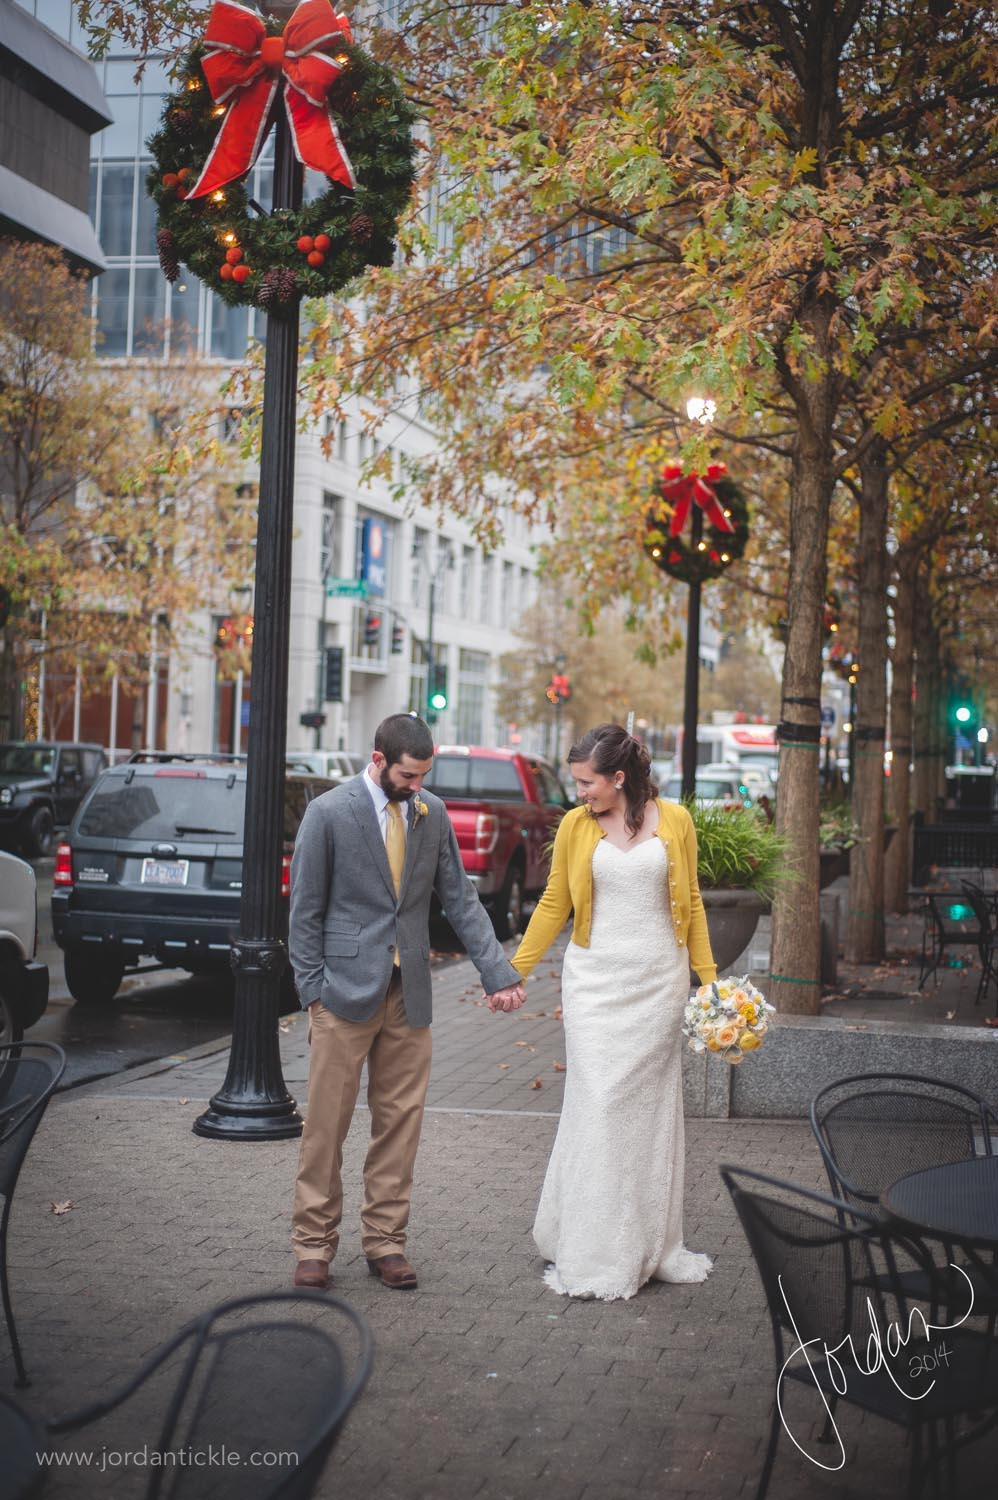 stockroom_downtown_raleigh_nc_wedding_jordan_tickle_photography-22.jpg